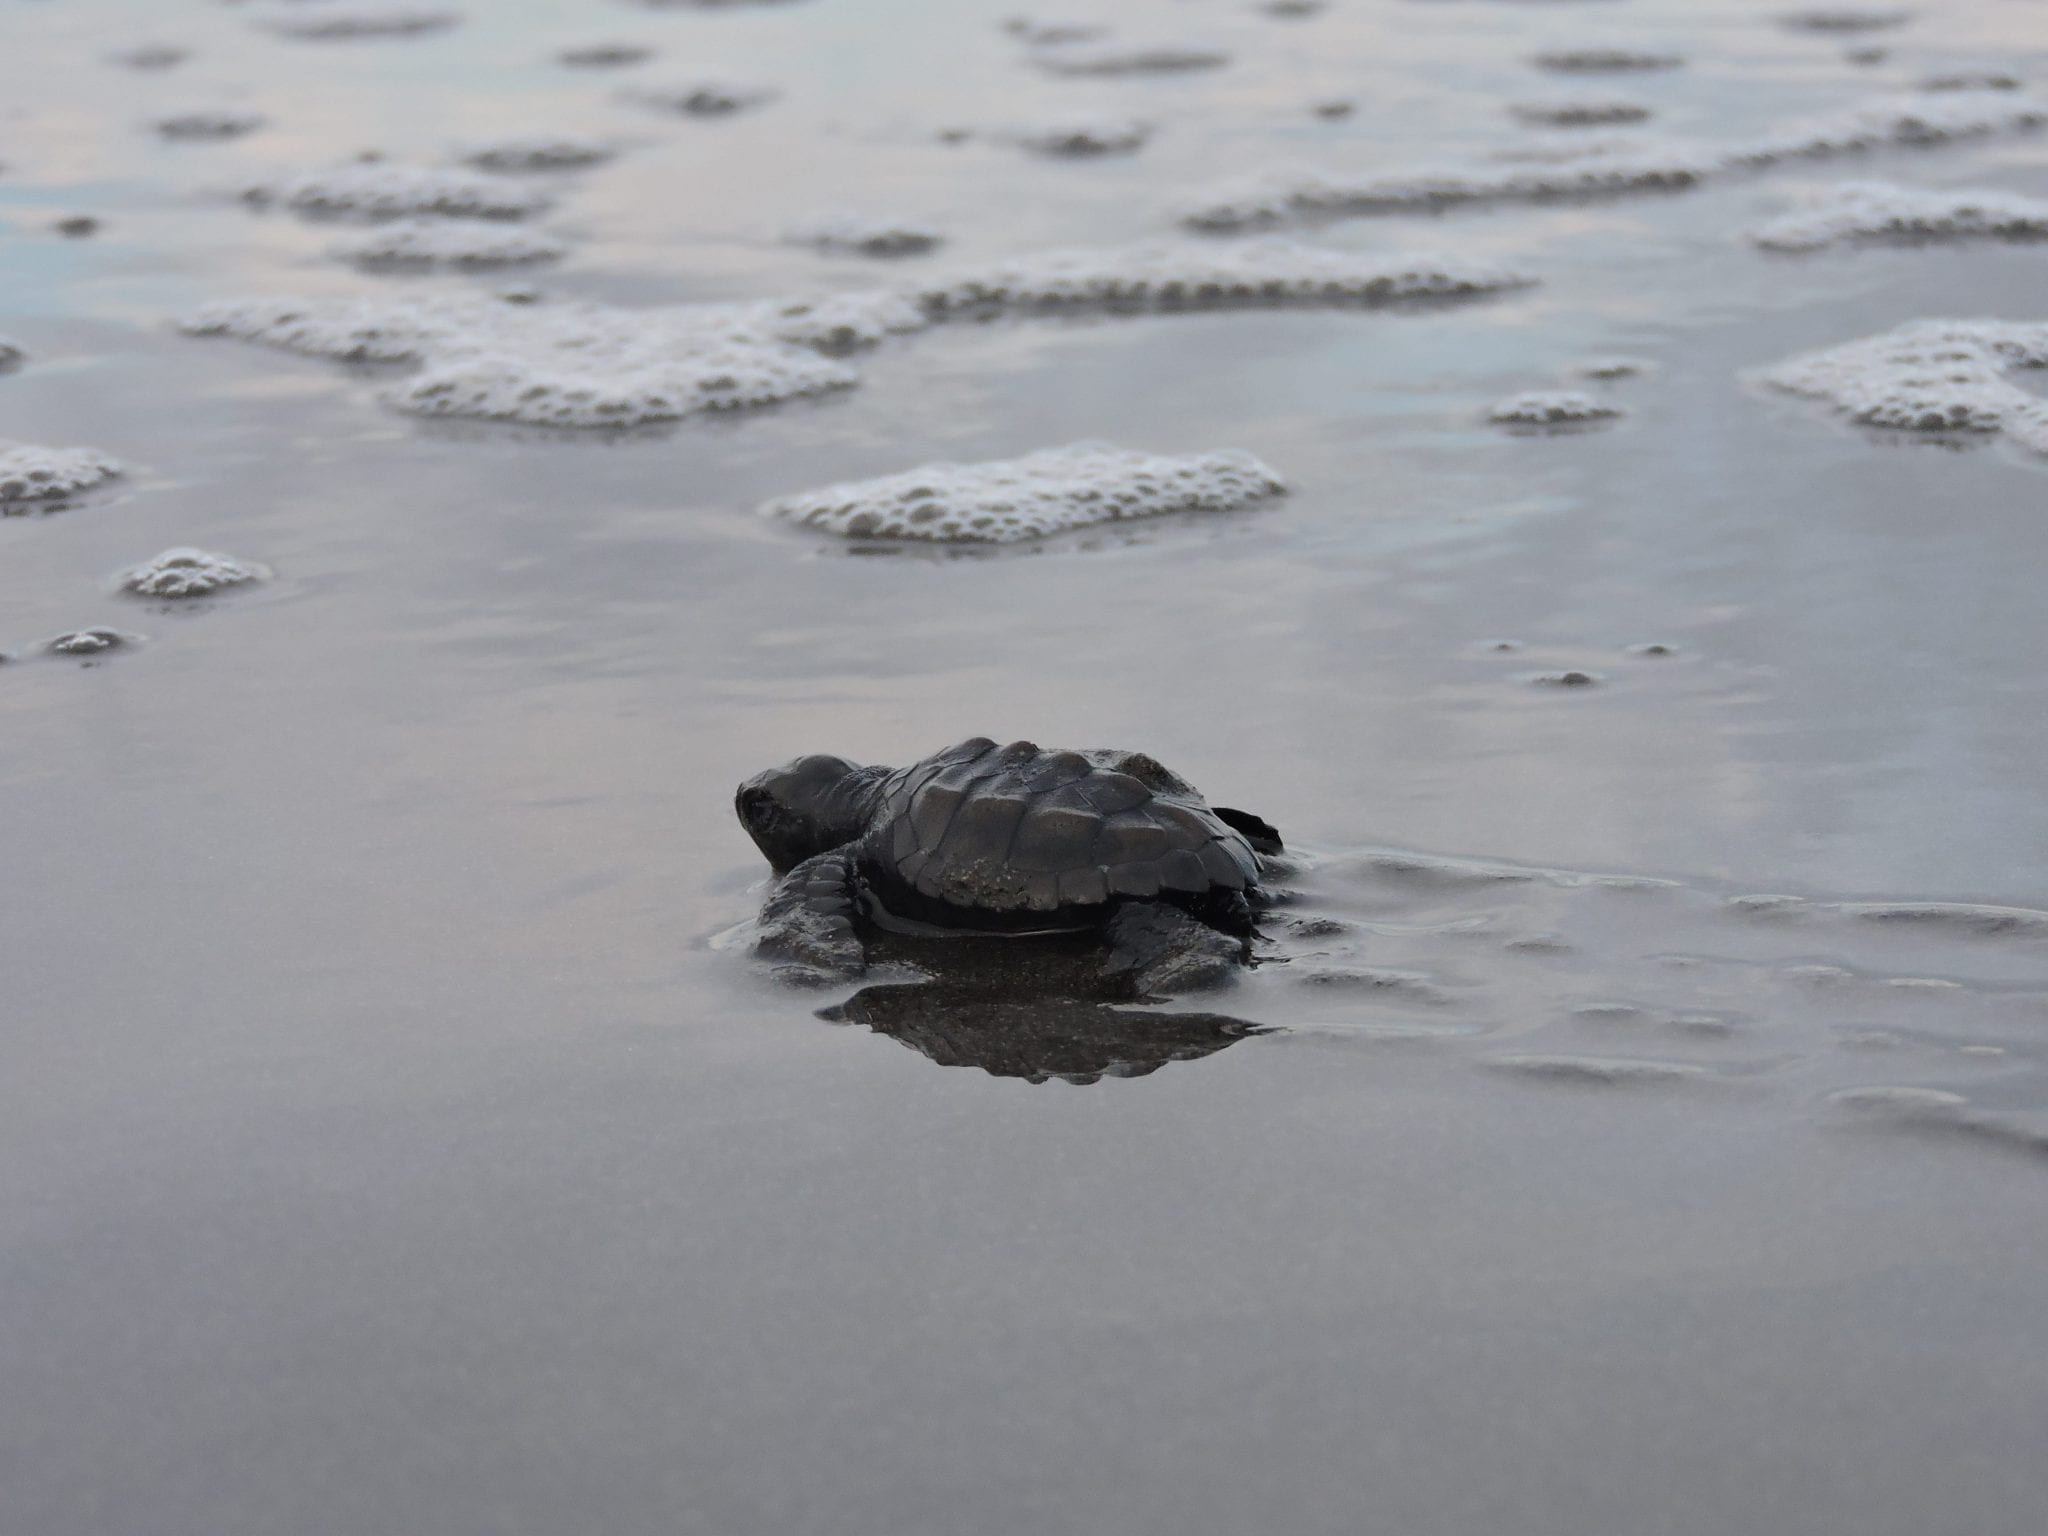 Turtles feel safe and calm on the Osa Peninsula coast, and breed freely. Tourists love watching the new generation of turtles escaping to the ocean and hiding in the waves.